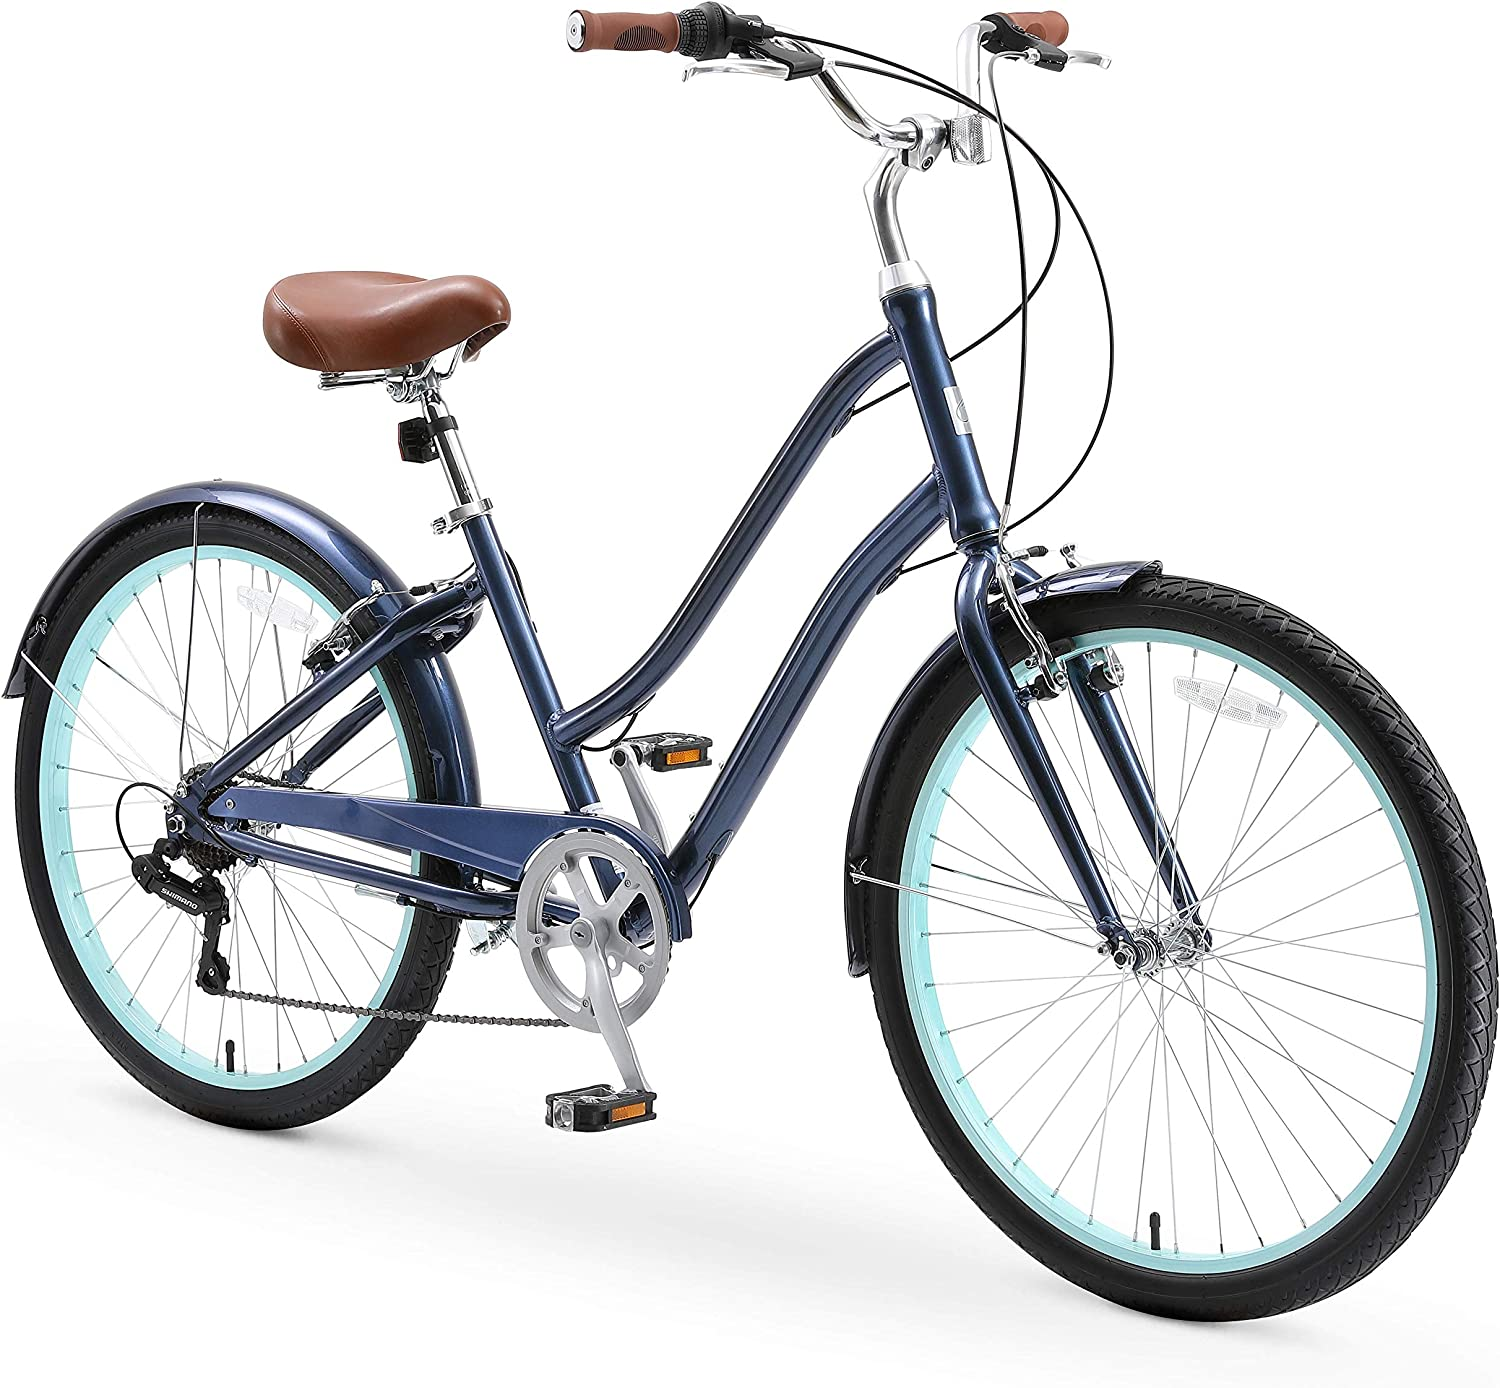 Cream with Brown Seat and Brown Grips sixthreezero EVRYjourney Casual Edition Womens 7-Speed Step-Through Touring Hybrid Bike 26 Bicycle